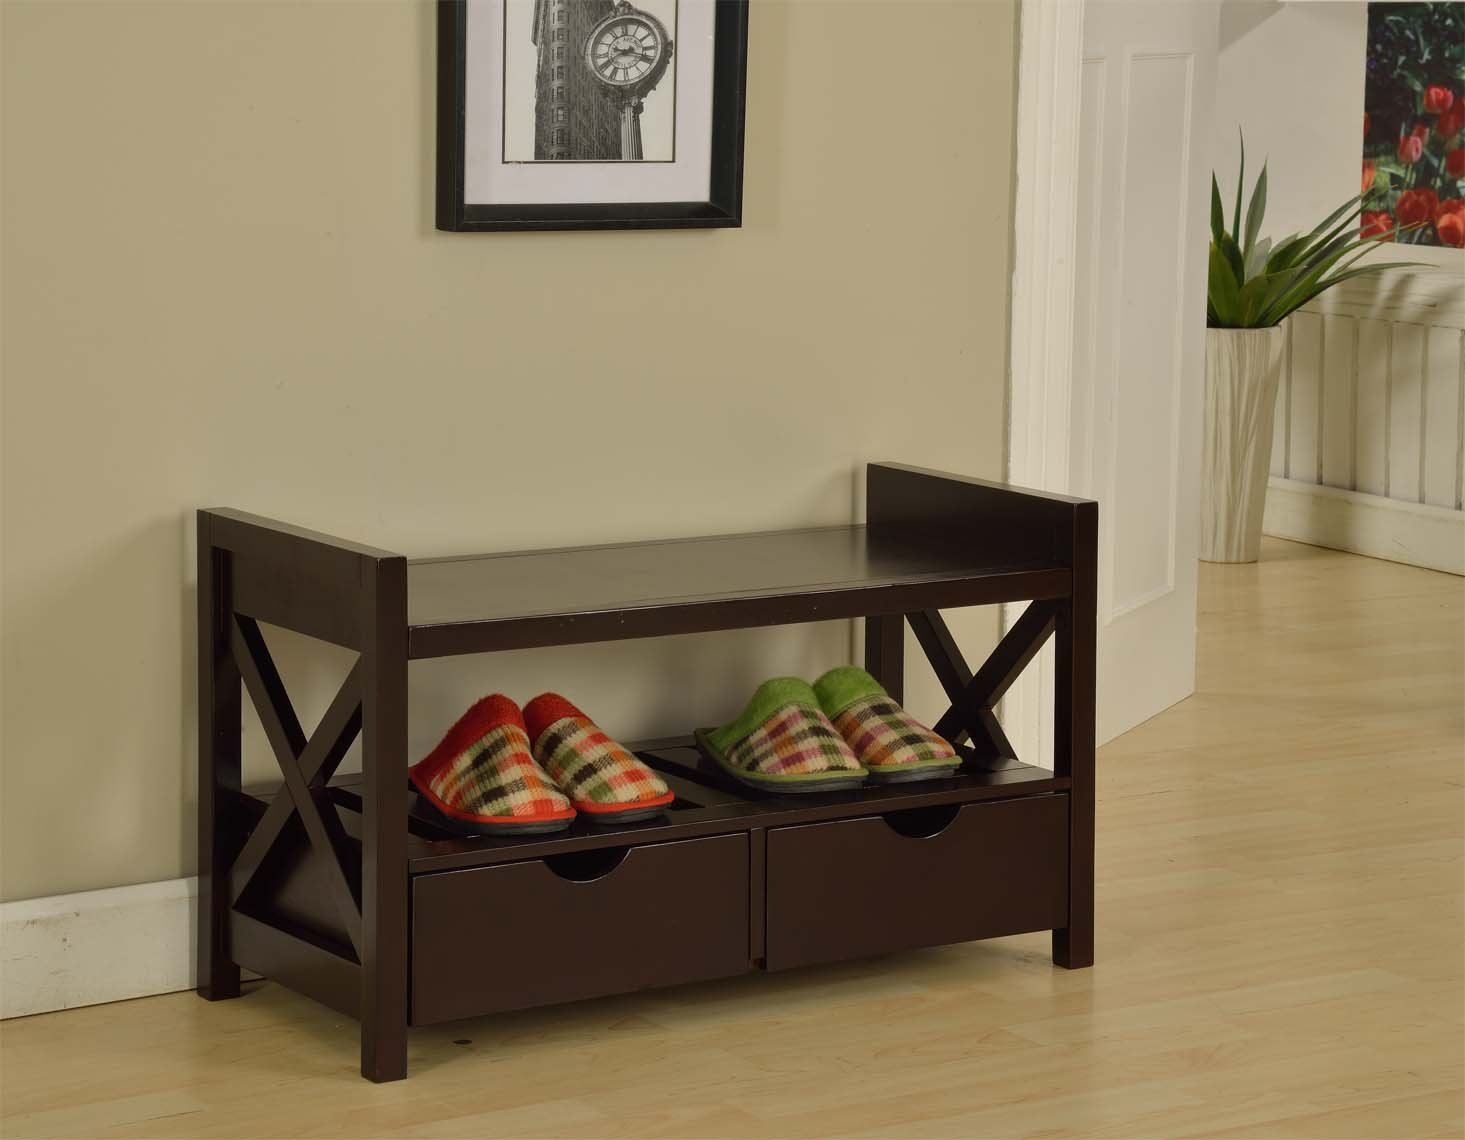 Amazon.com: Kingu0027s Brand Cherry Finish Wood Shoe Storage Bench With  Drawers: Kitchen U0026 Dining